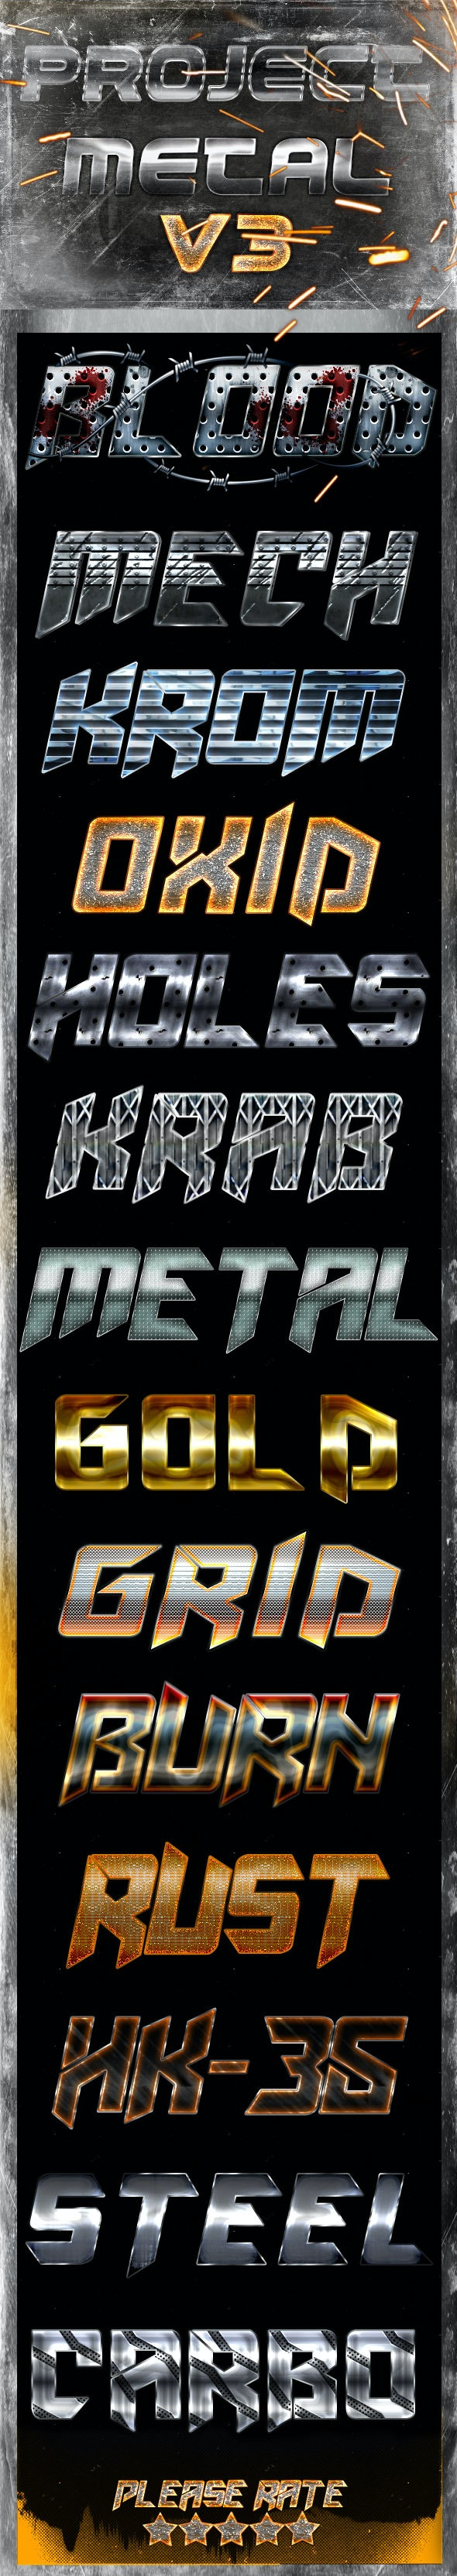 Project Metal V3 - Photoshop Text Styles - Text Effects Styles